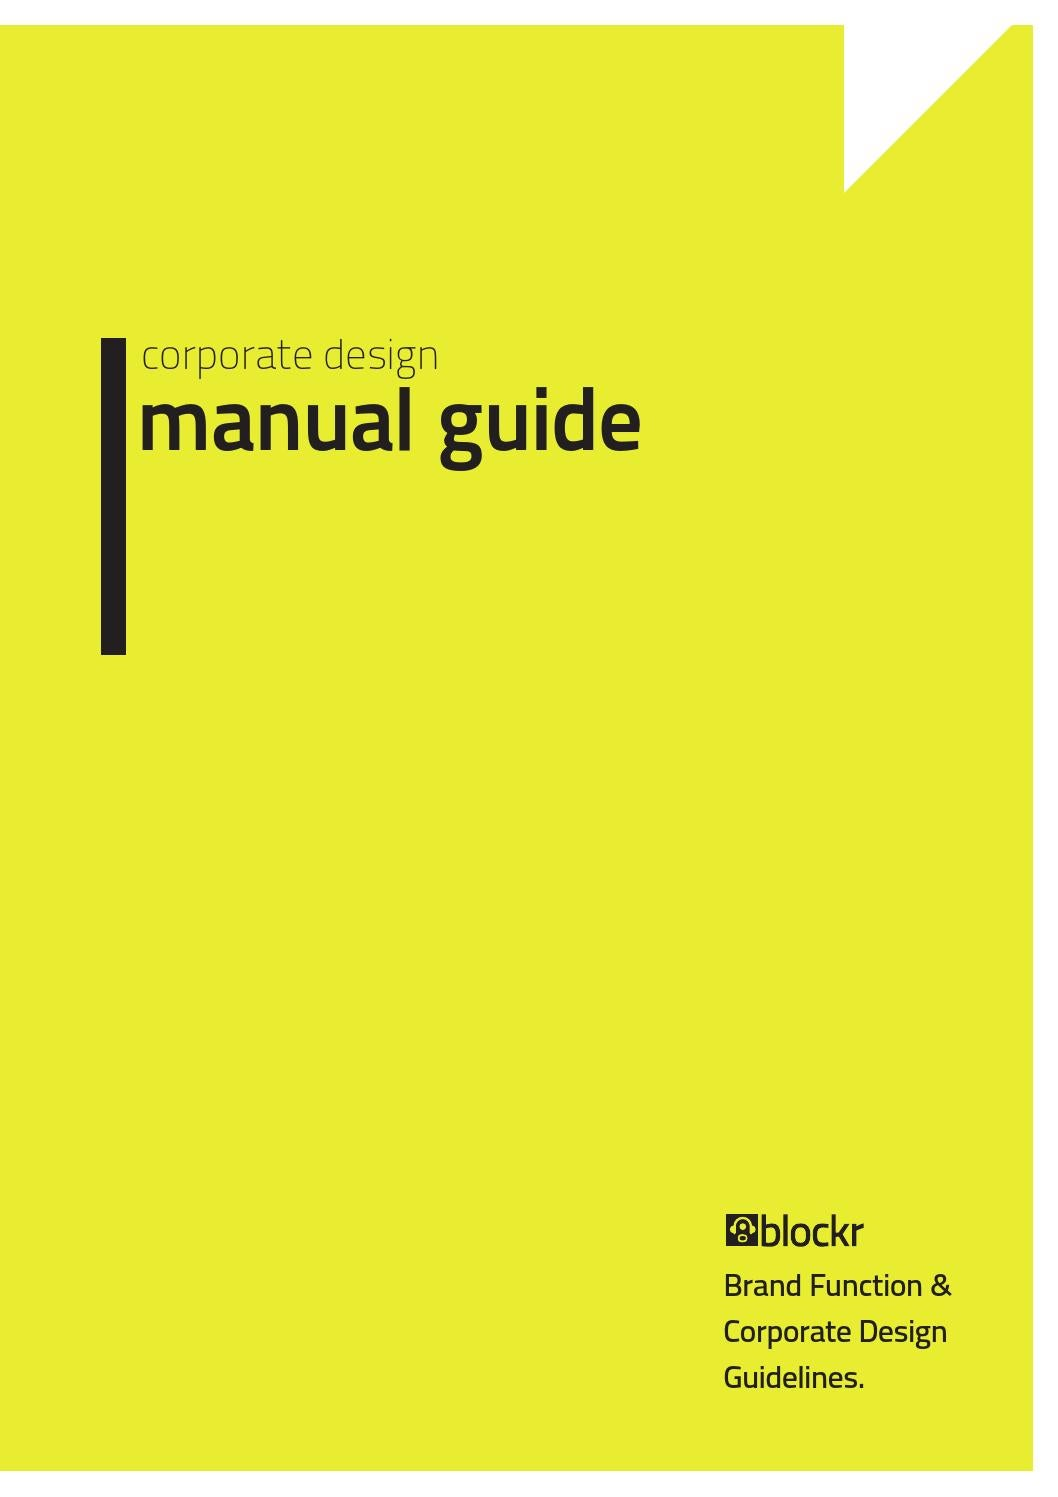 Book Cover Design Guide : Corporate design manual guide by egotype issuu